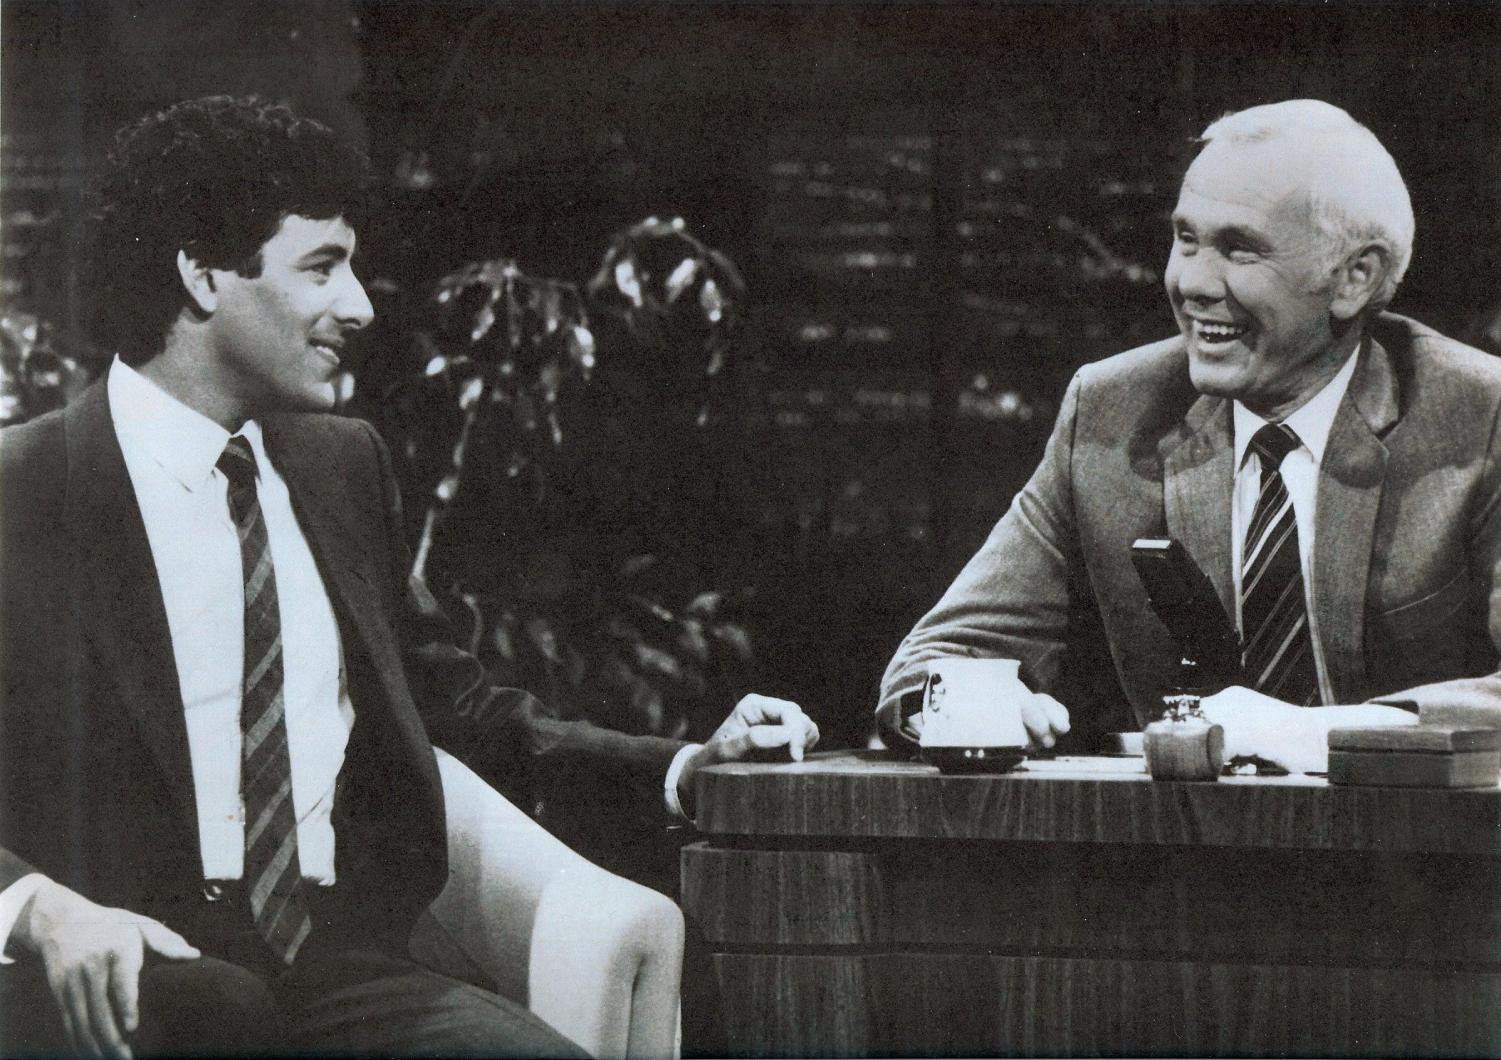 Johnny Carson unfortunately passed away in 2005.